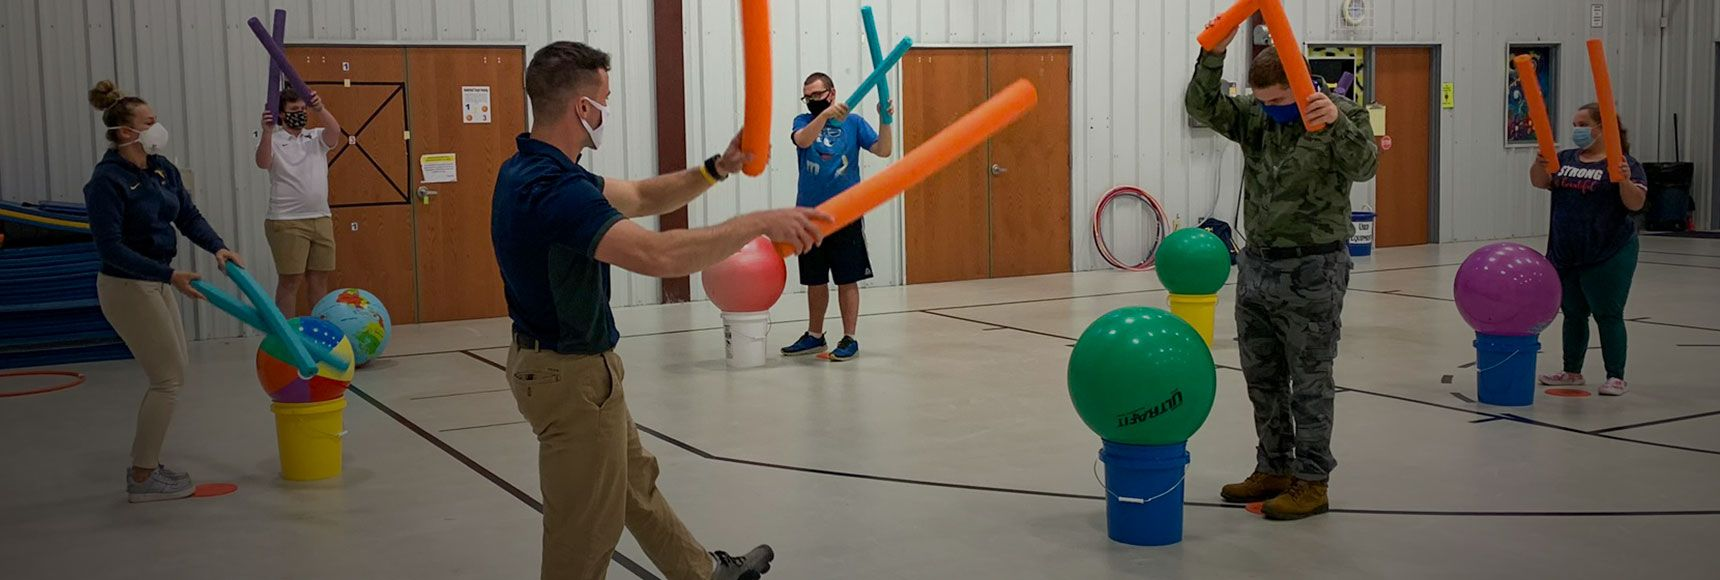 Student teachers provide adapted physical education instruction